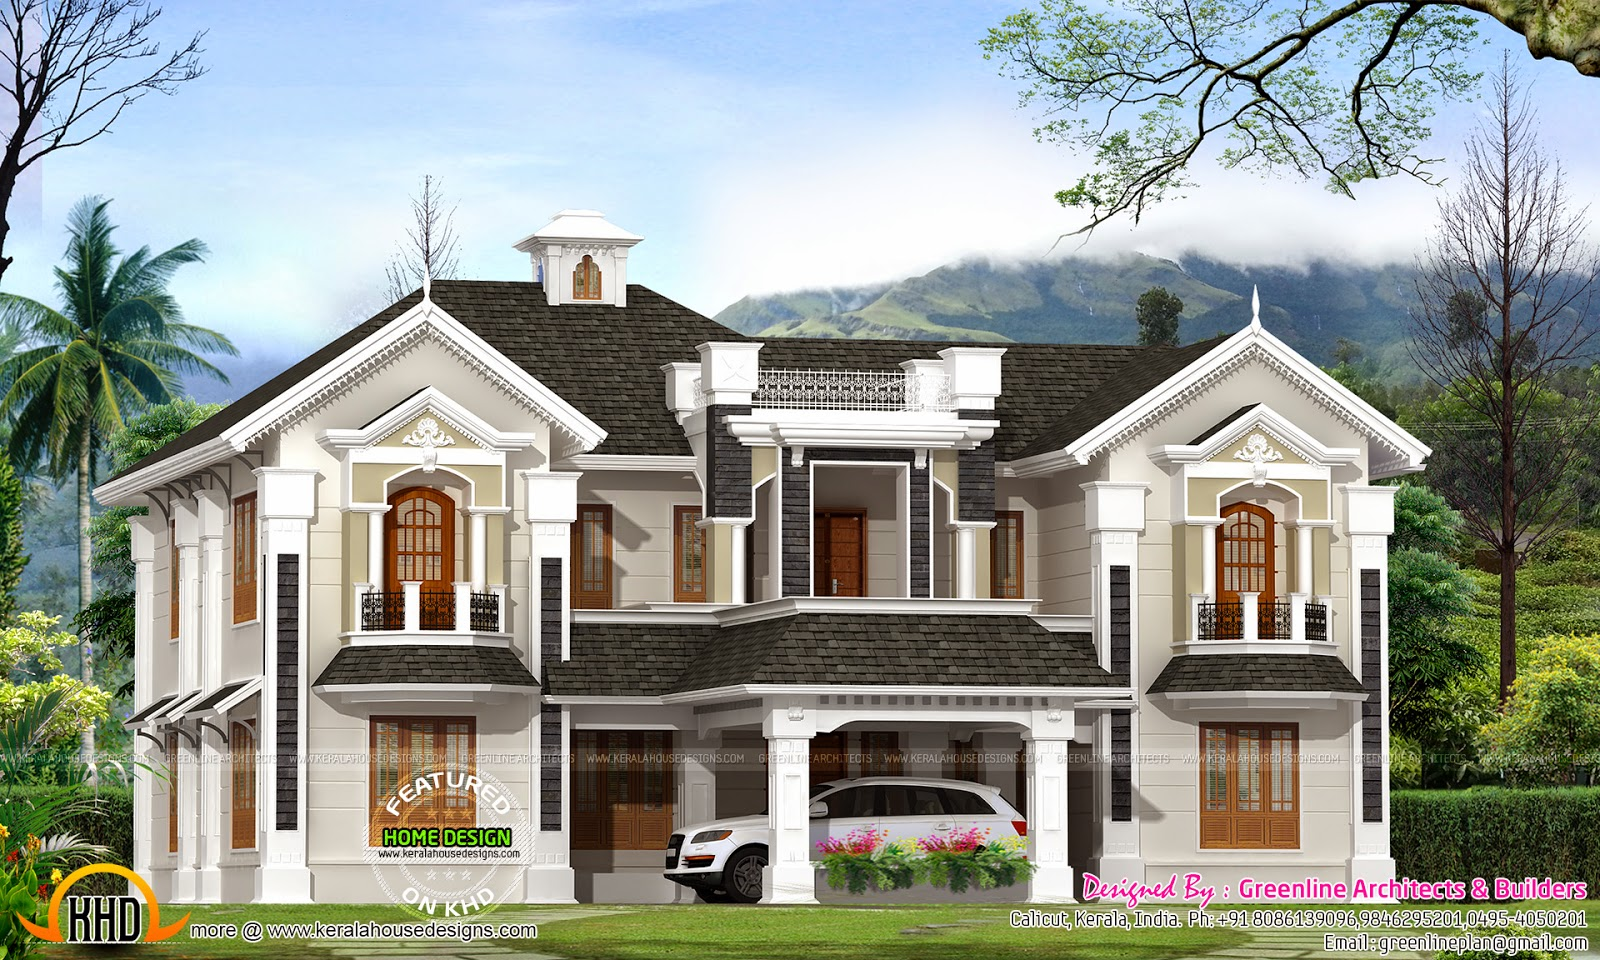 Colonial style house in kerala kerala home design and for Different style house plans